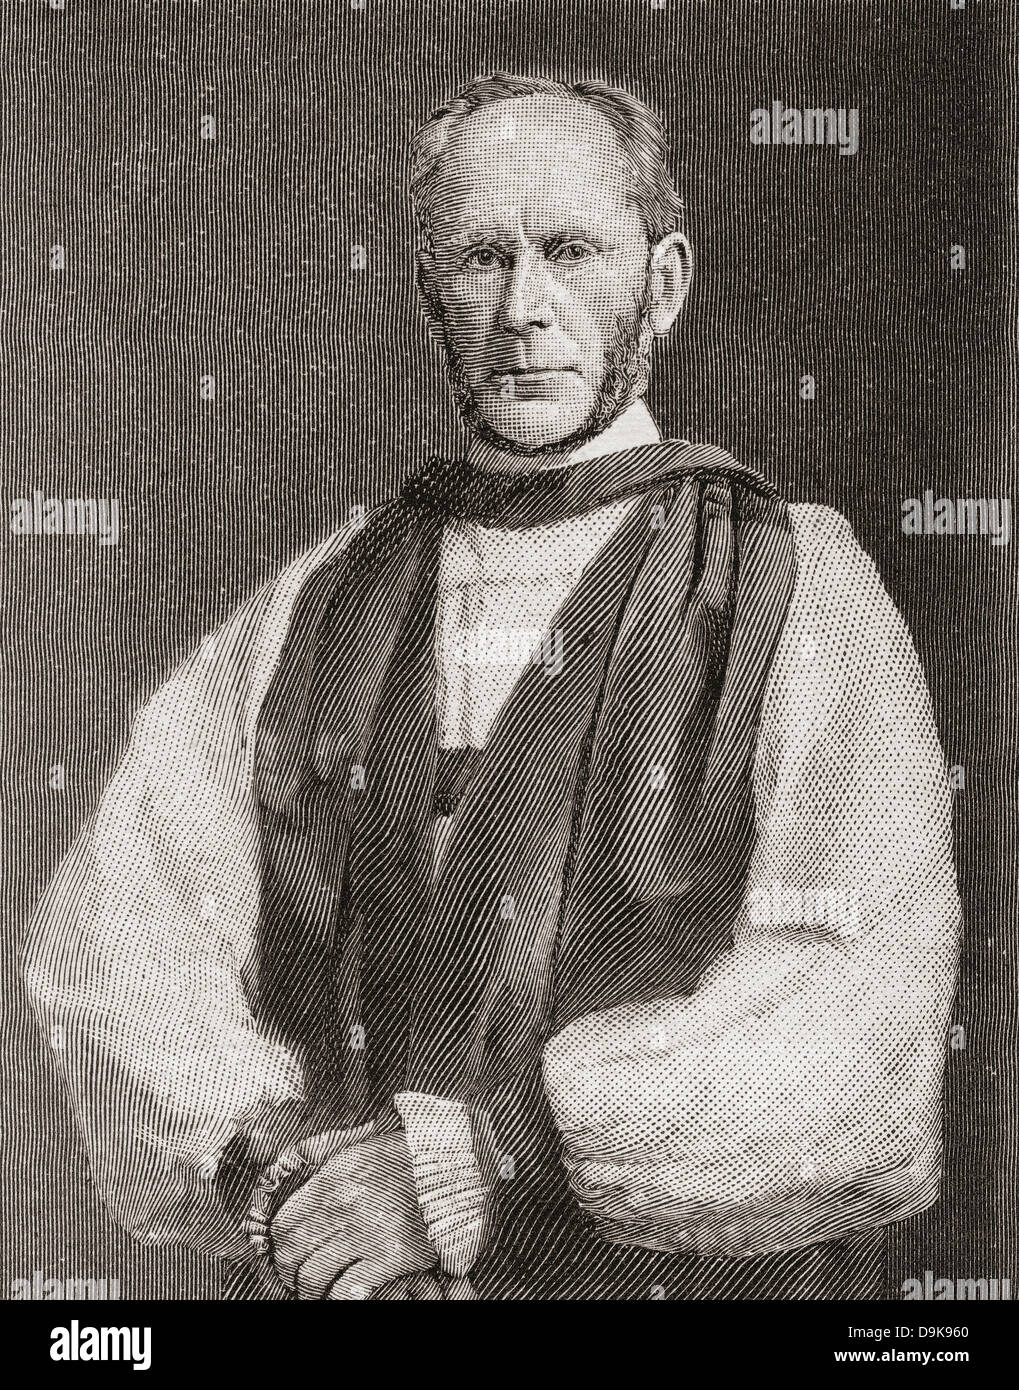 George Forrest Browne, 1833 – 1930. English bishop, the first Anglican Bishop of Stepney and also Bishop of Bristol. - Stock Image